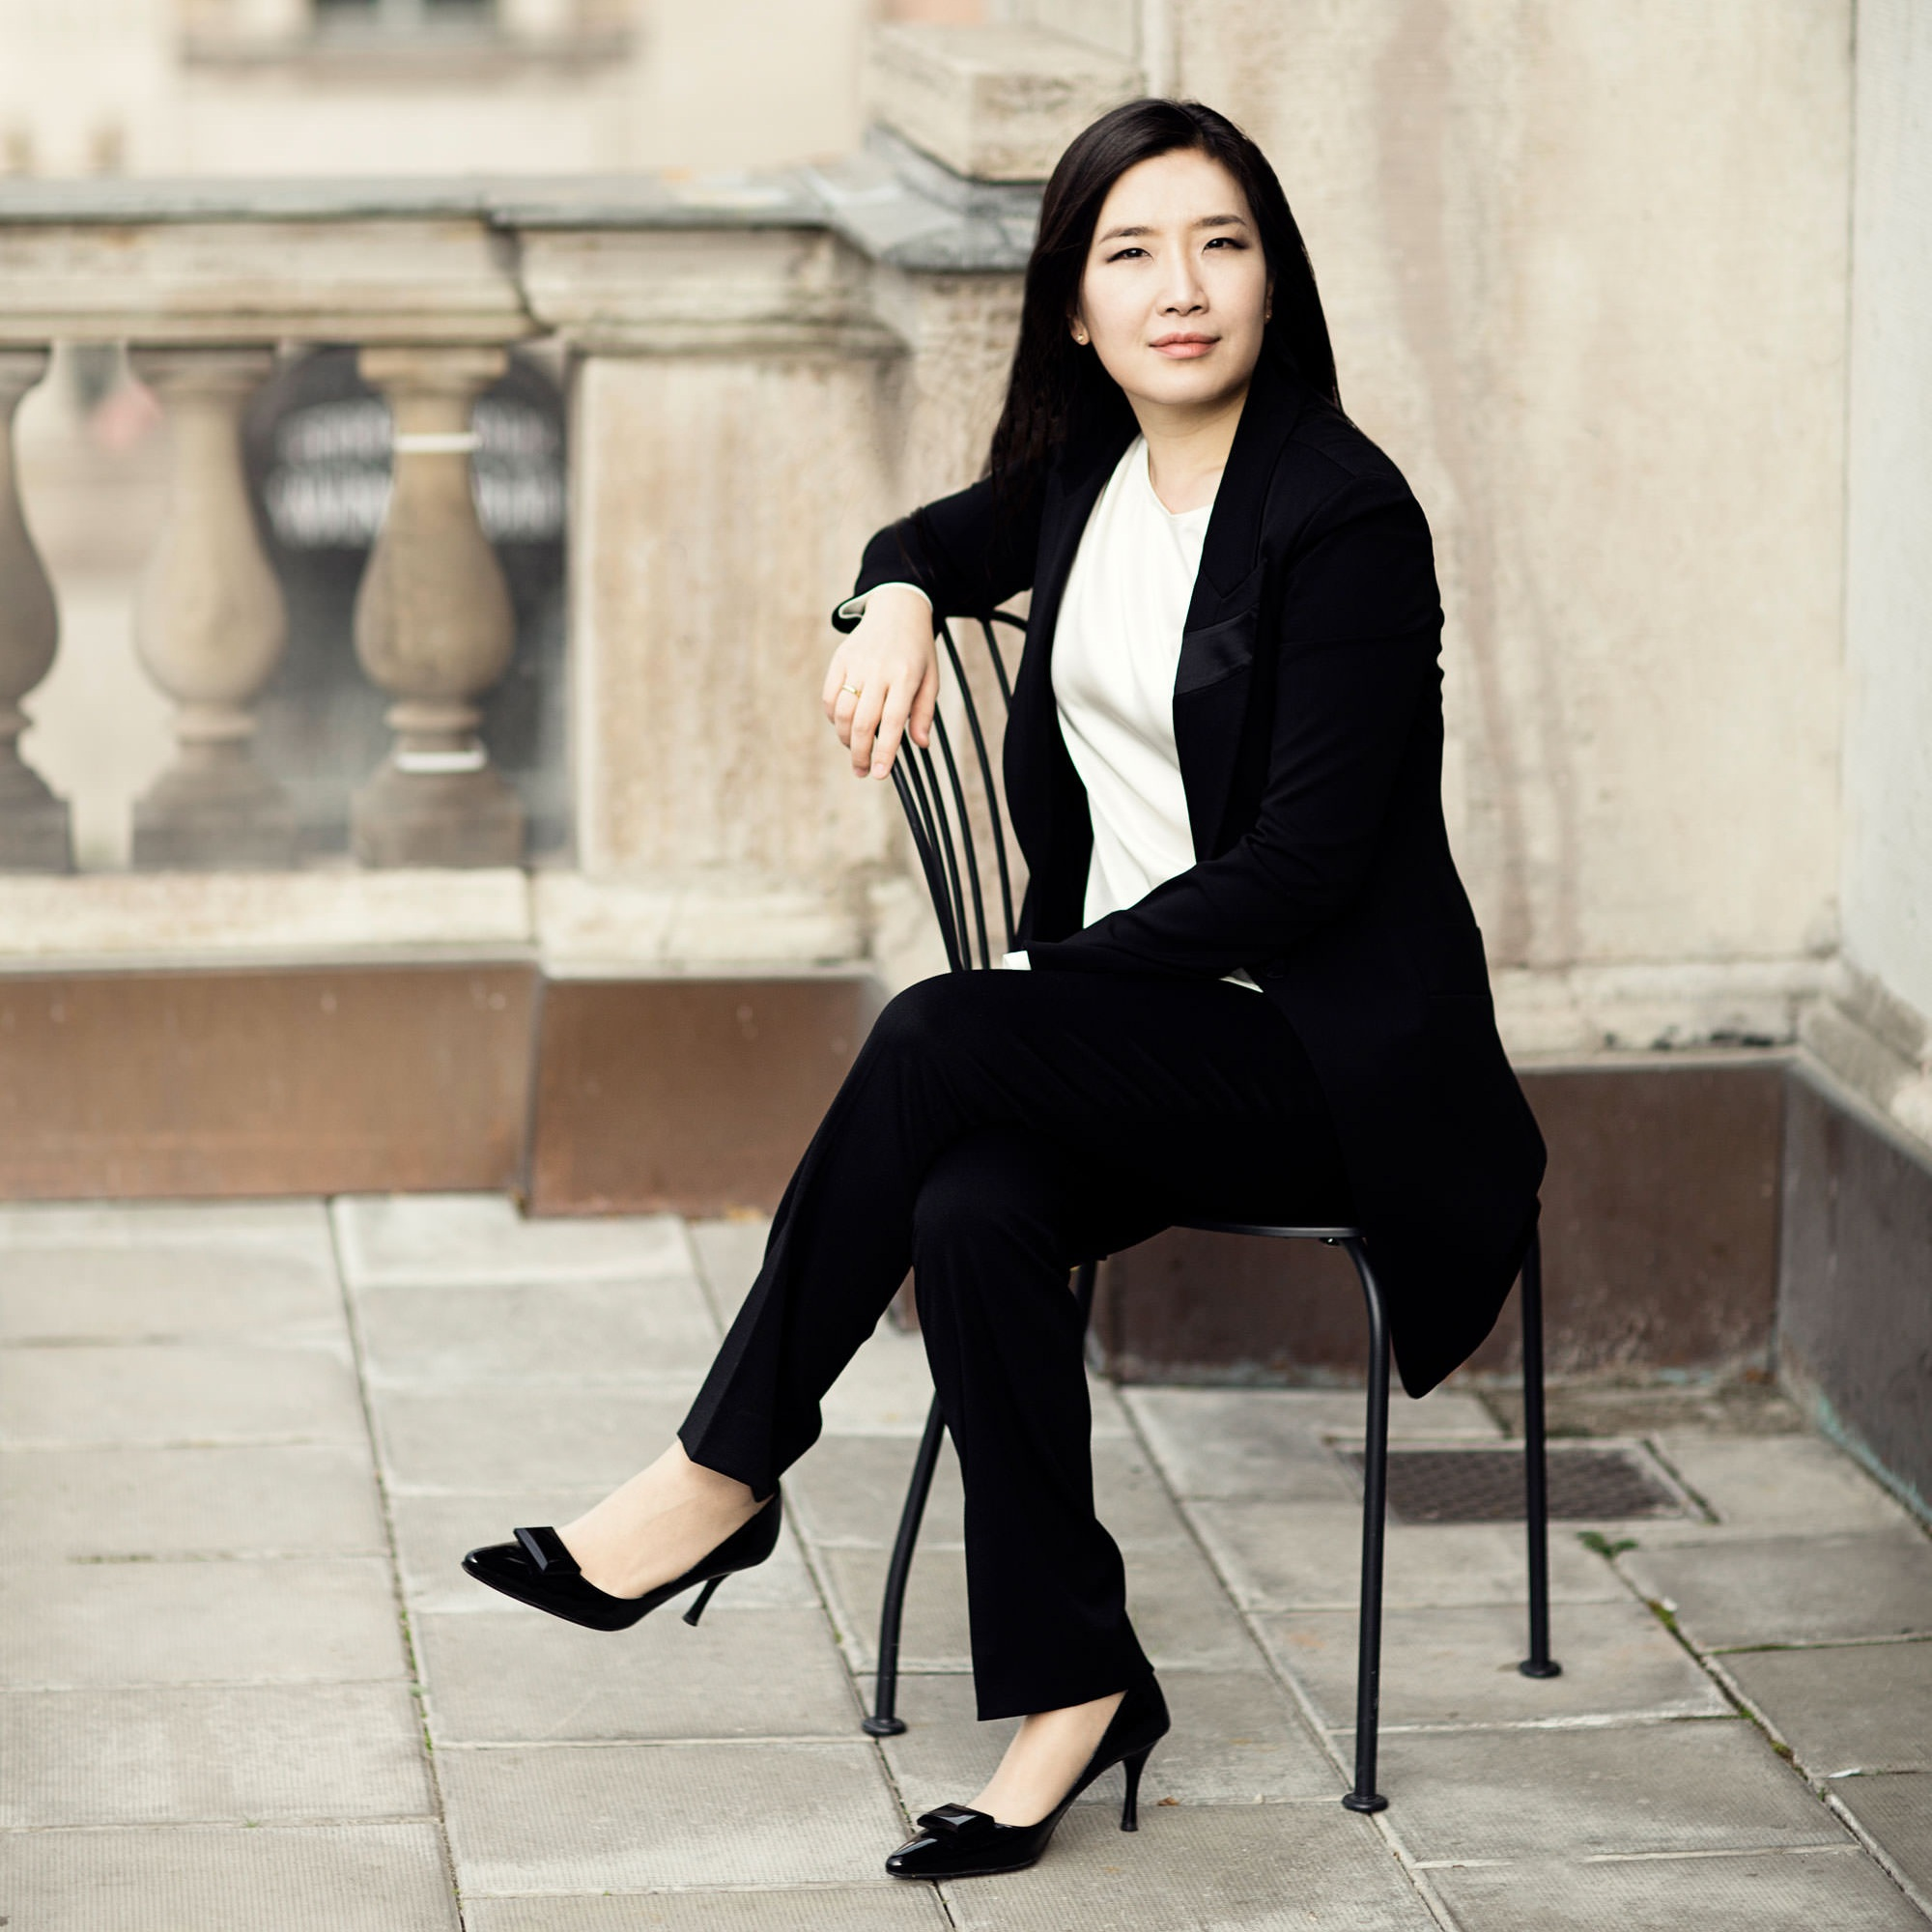 """Remember this name: Eun Sun Kim. She's a brilliant rising star in the conducting world. A maestra to watch…"" - Cincinnati Business Courier"